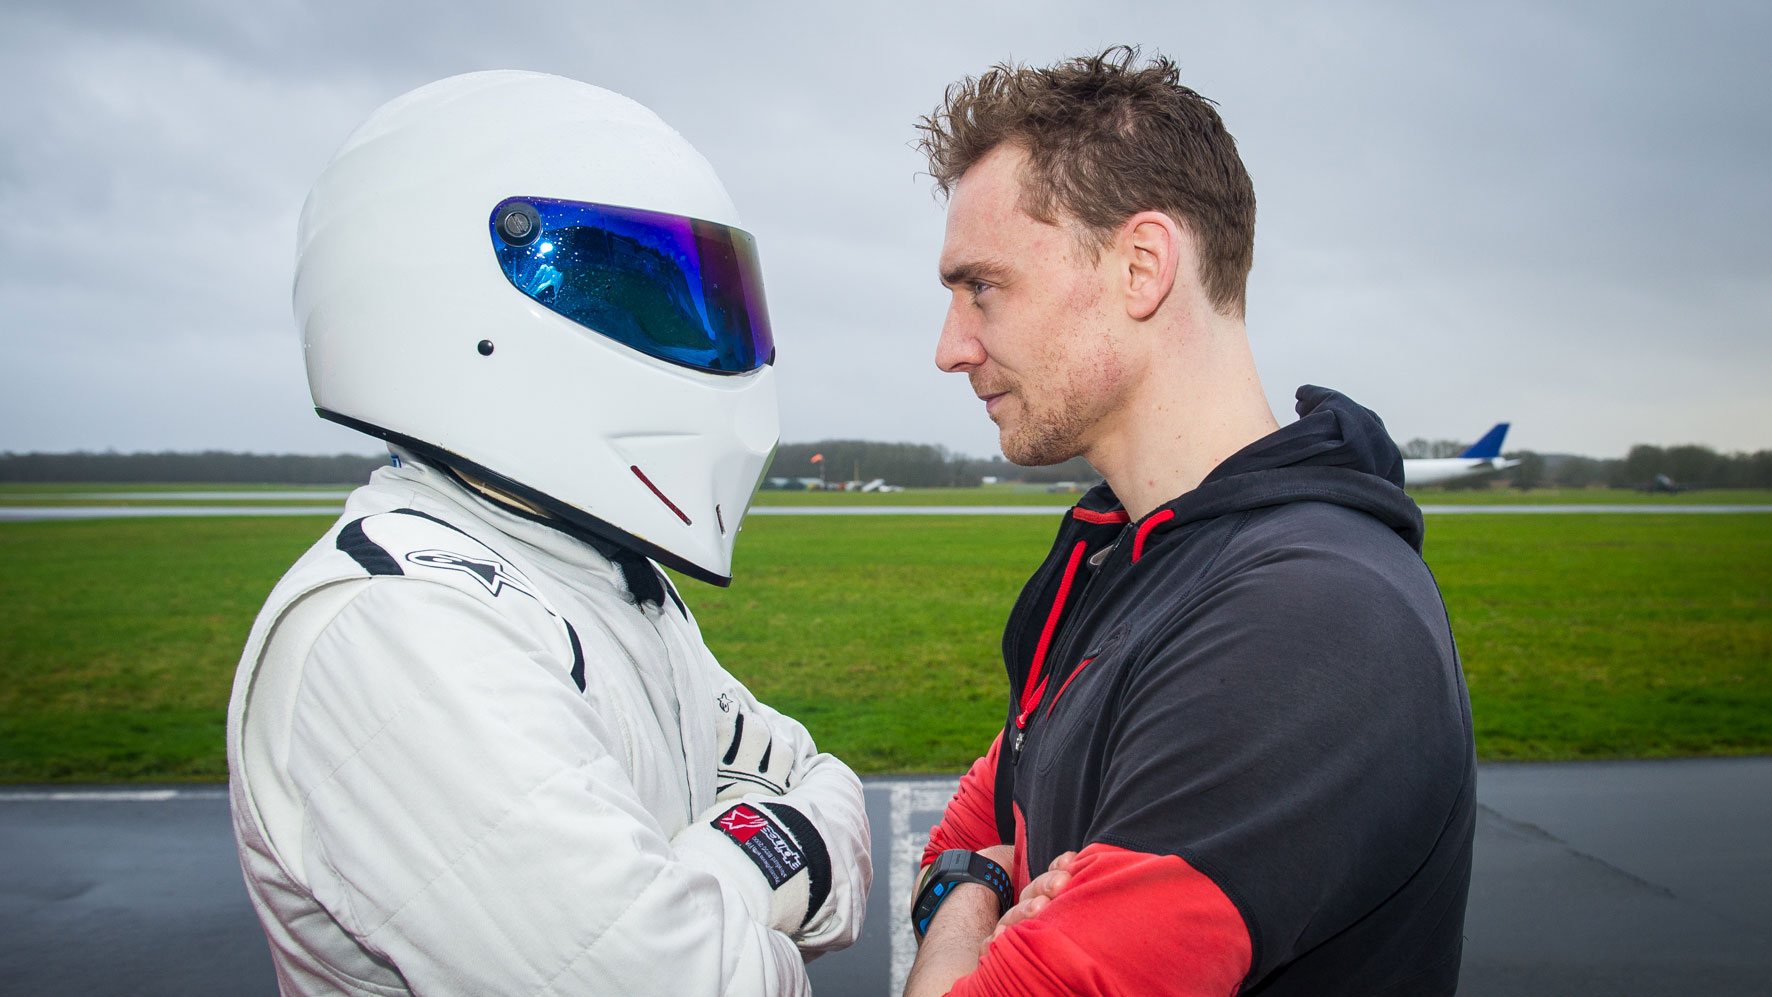 The Stig and Tom Hiddleston face off